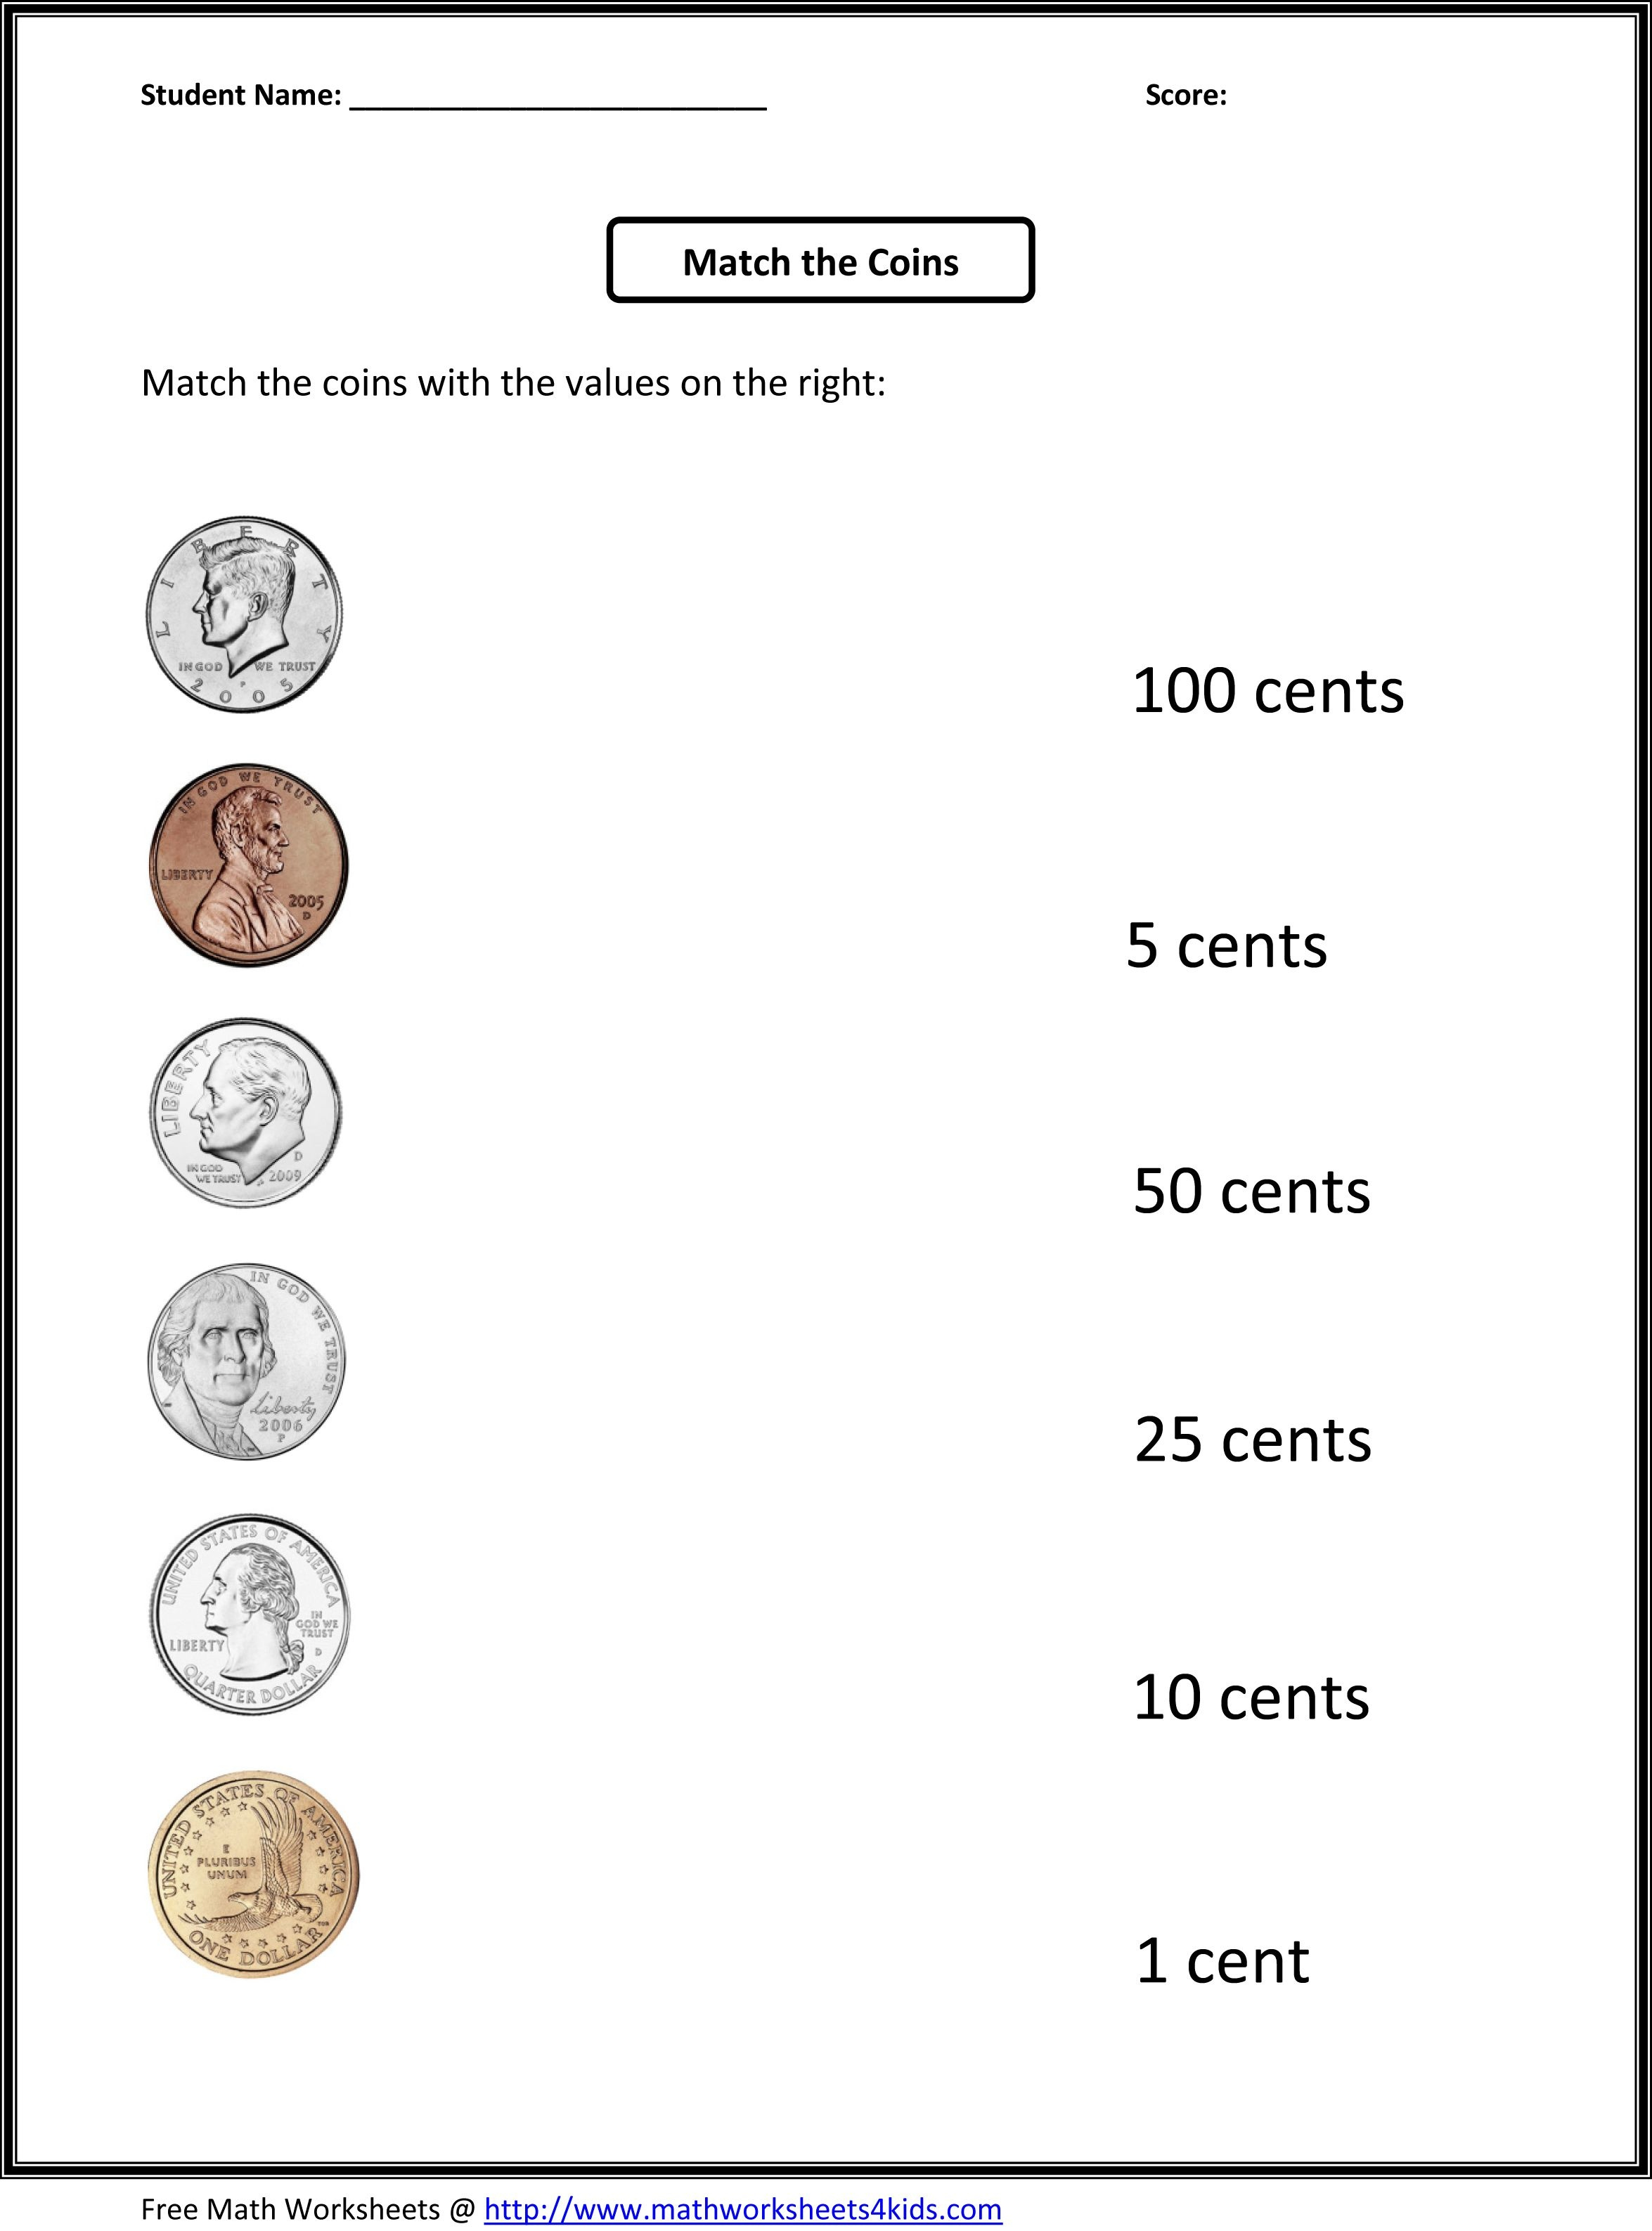 Free 1St Grade Worksheets | Match The Coins And Its Values - Free Printable Money Worksheets For 1St Grade